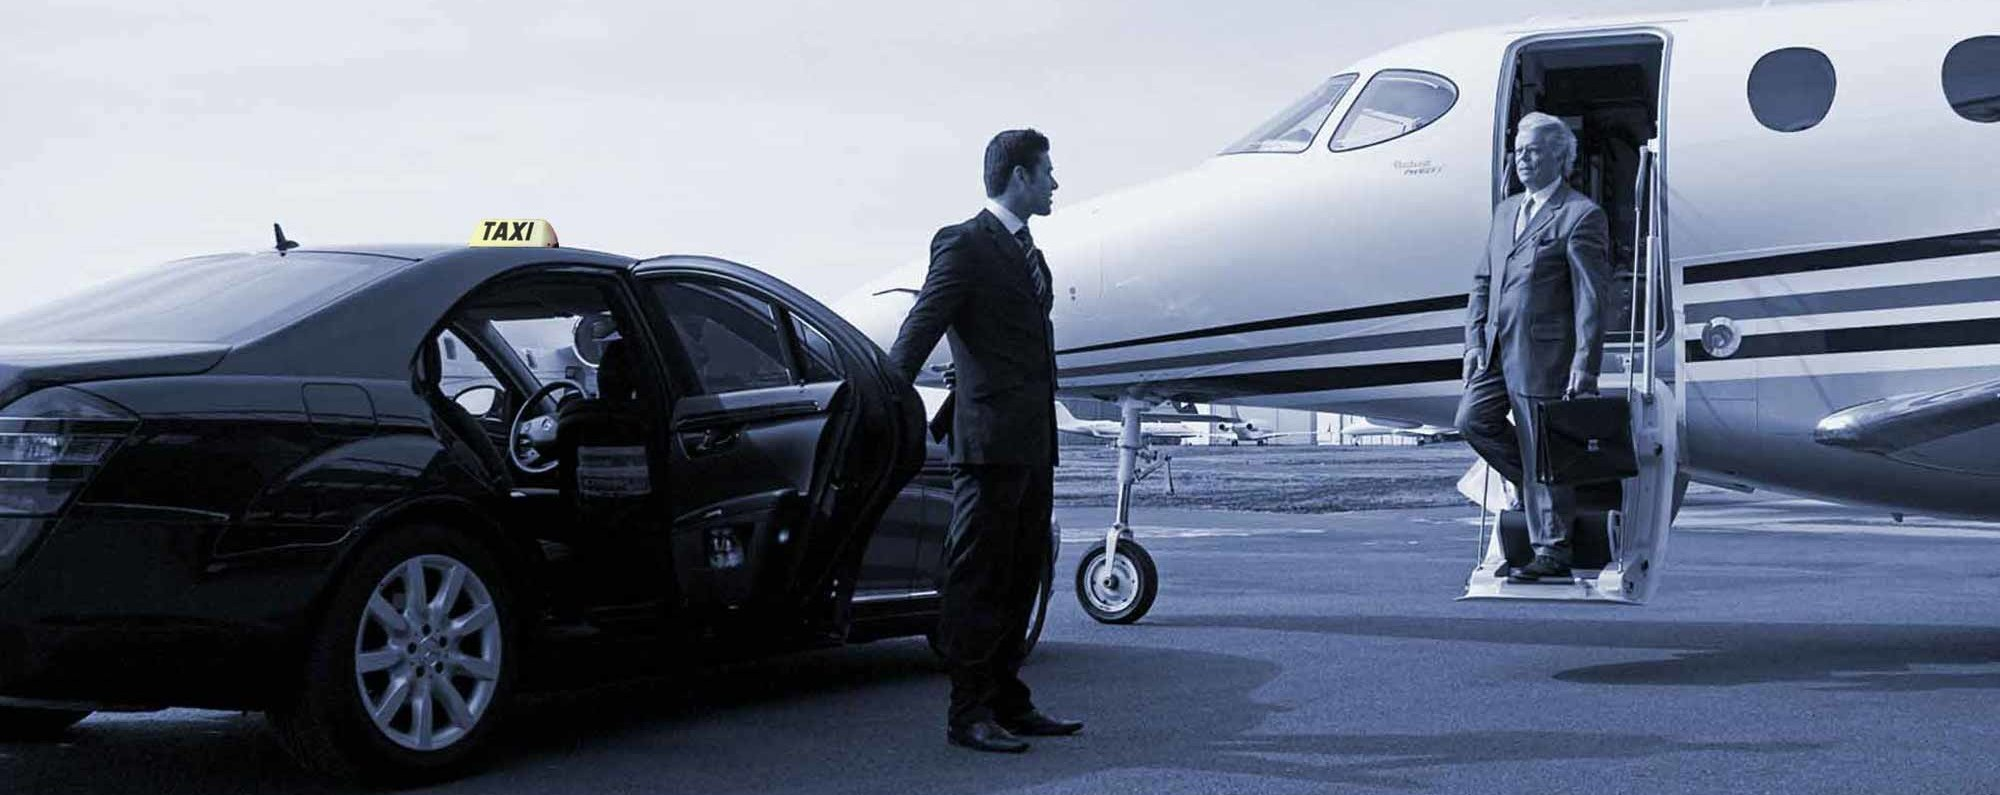 airport transfer service Pula Taxi